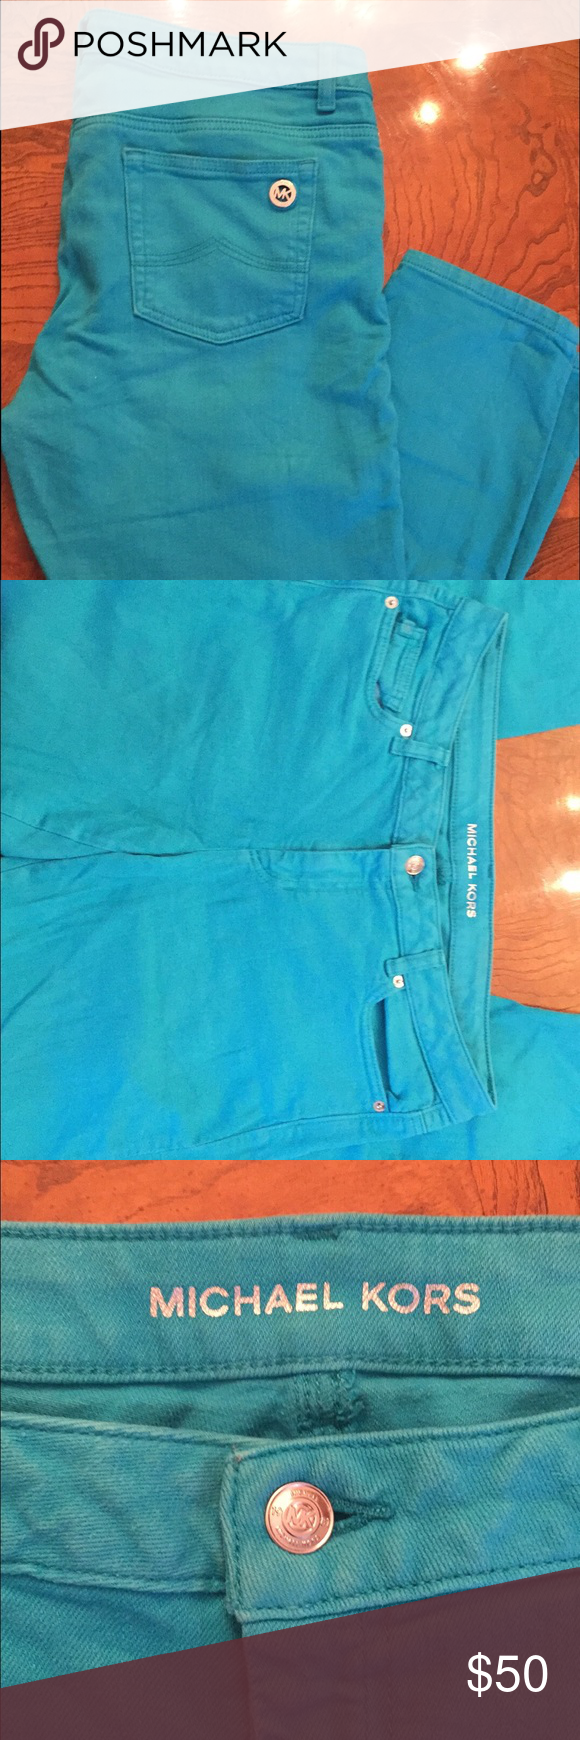 FINAL PRICE DROP Michael Kors pants! Never used!! Cute color! Perfect for summer! Need to go! FINAL PRICE! Closet close out! Michael Kors Pants Skinny